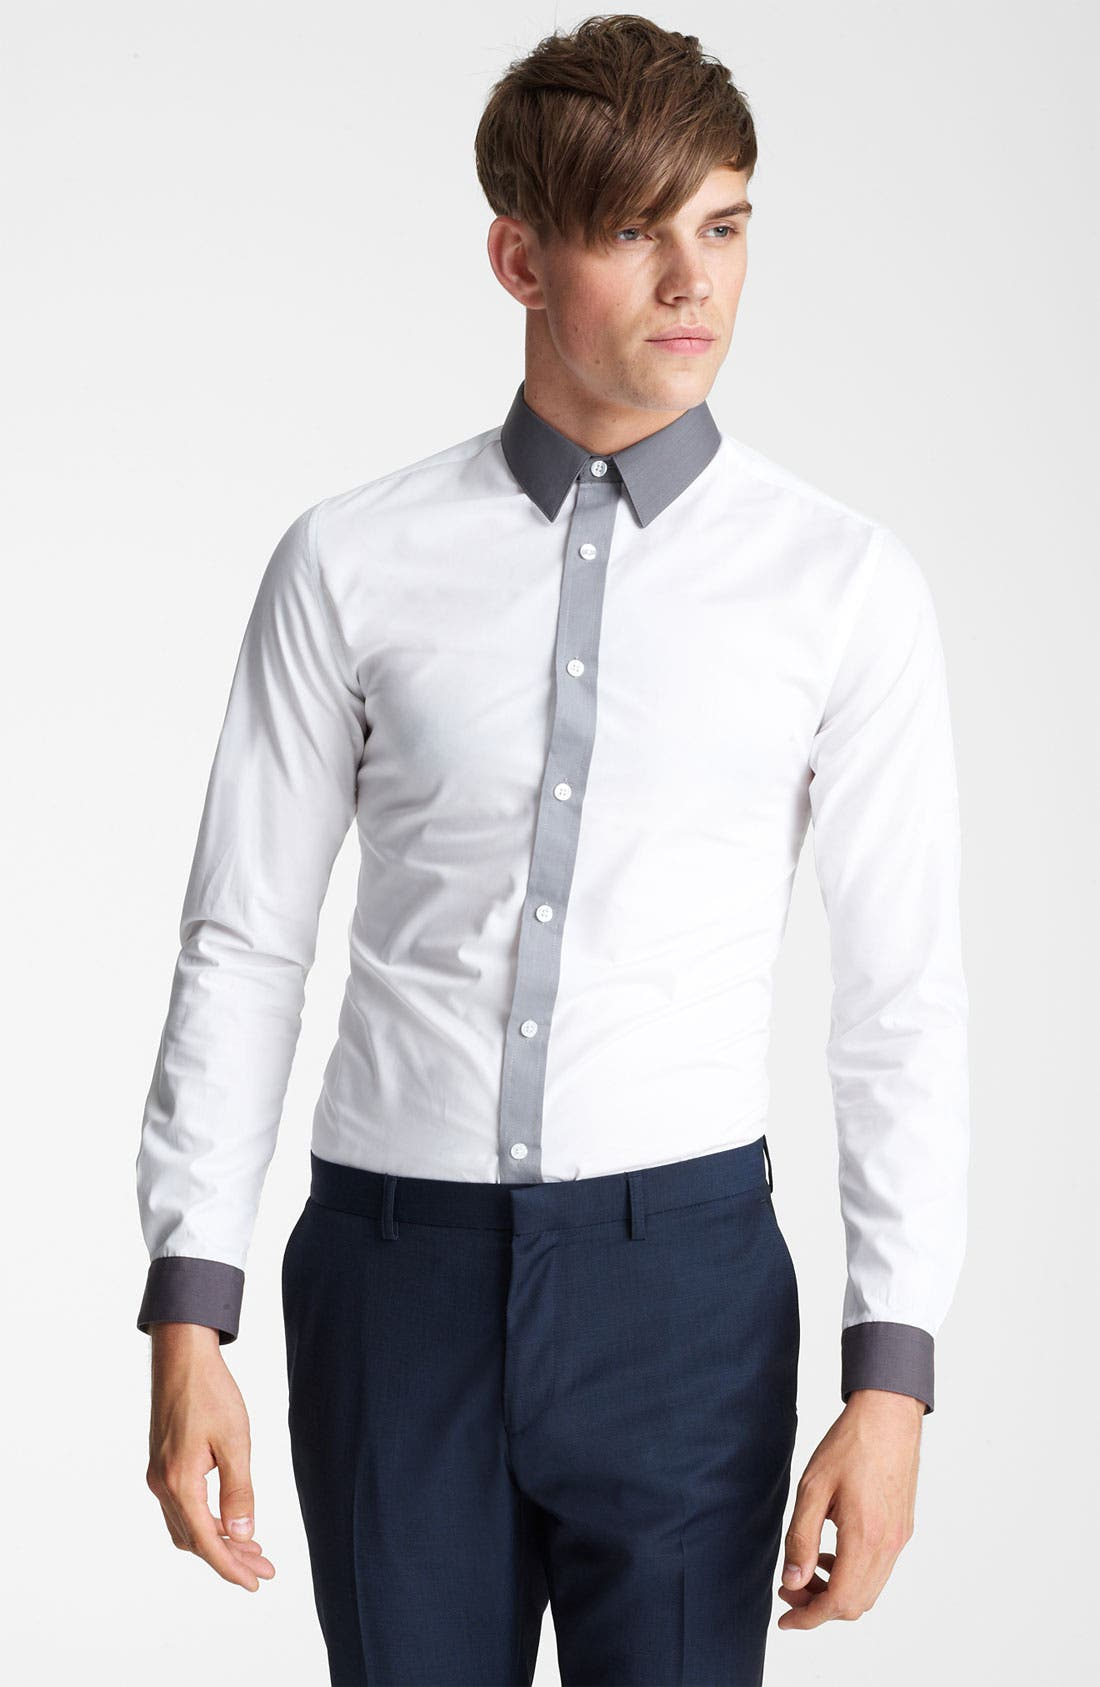 Alternate Image 1 Selected - Topman 'Darren' Extra Trim Dress Shirt